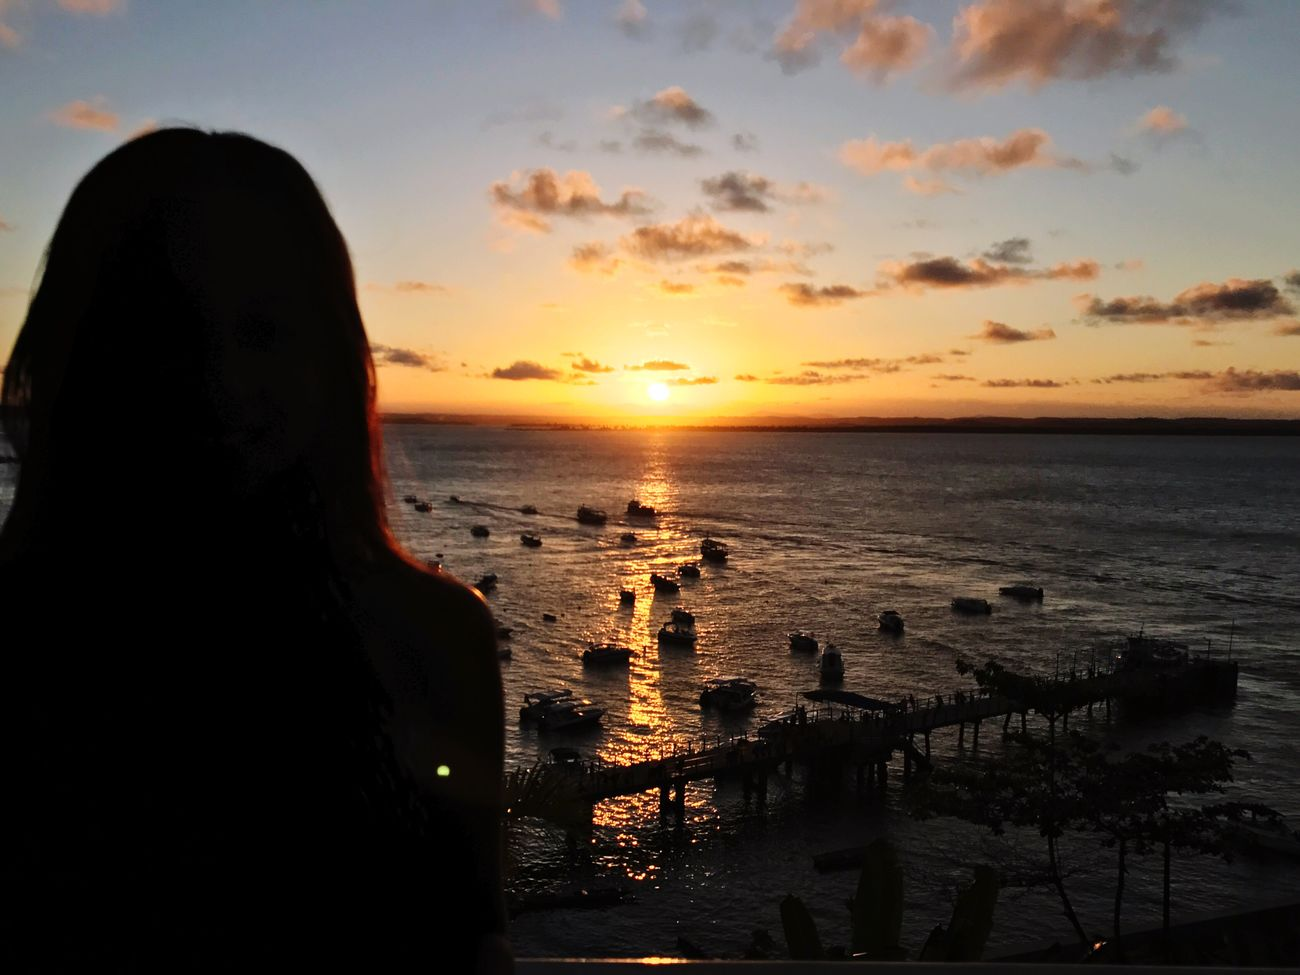 Morro De São Paulo Sea Sunset Water Sky Horizon Over Water One Person Lifestyles Real People Beach Rear View Scenics Outdoors Cloud - Sky Reflection Women EyeEmNewHere Salvador Bahia Night Sunset_collection